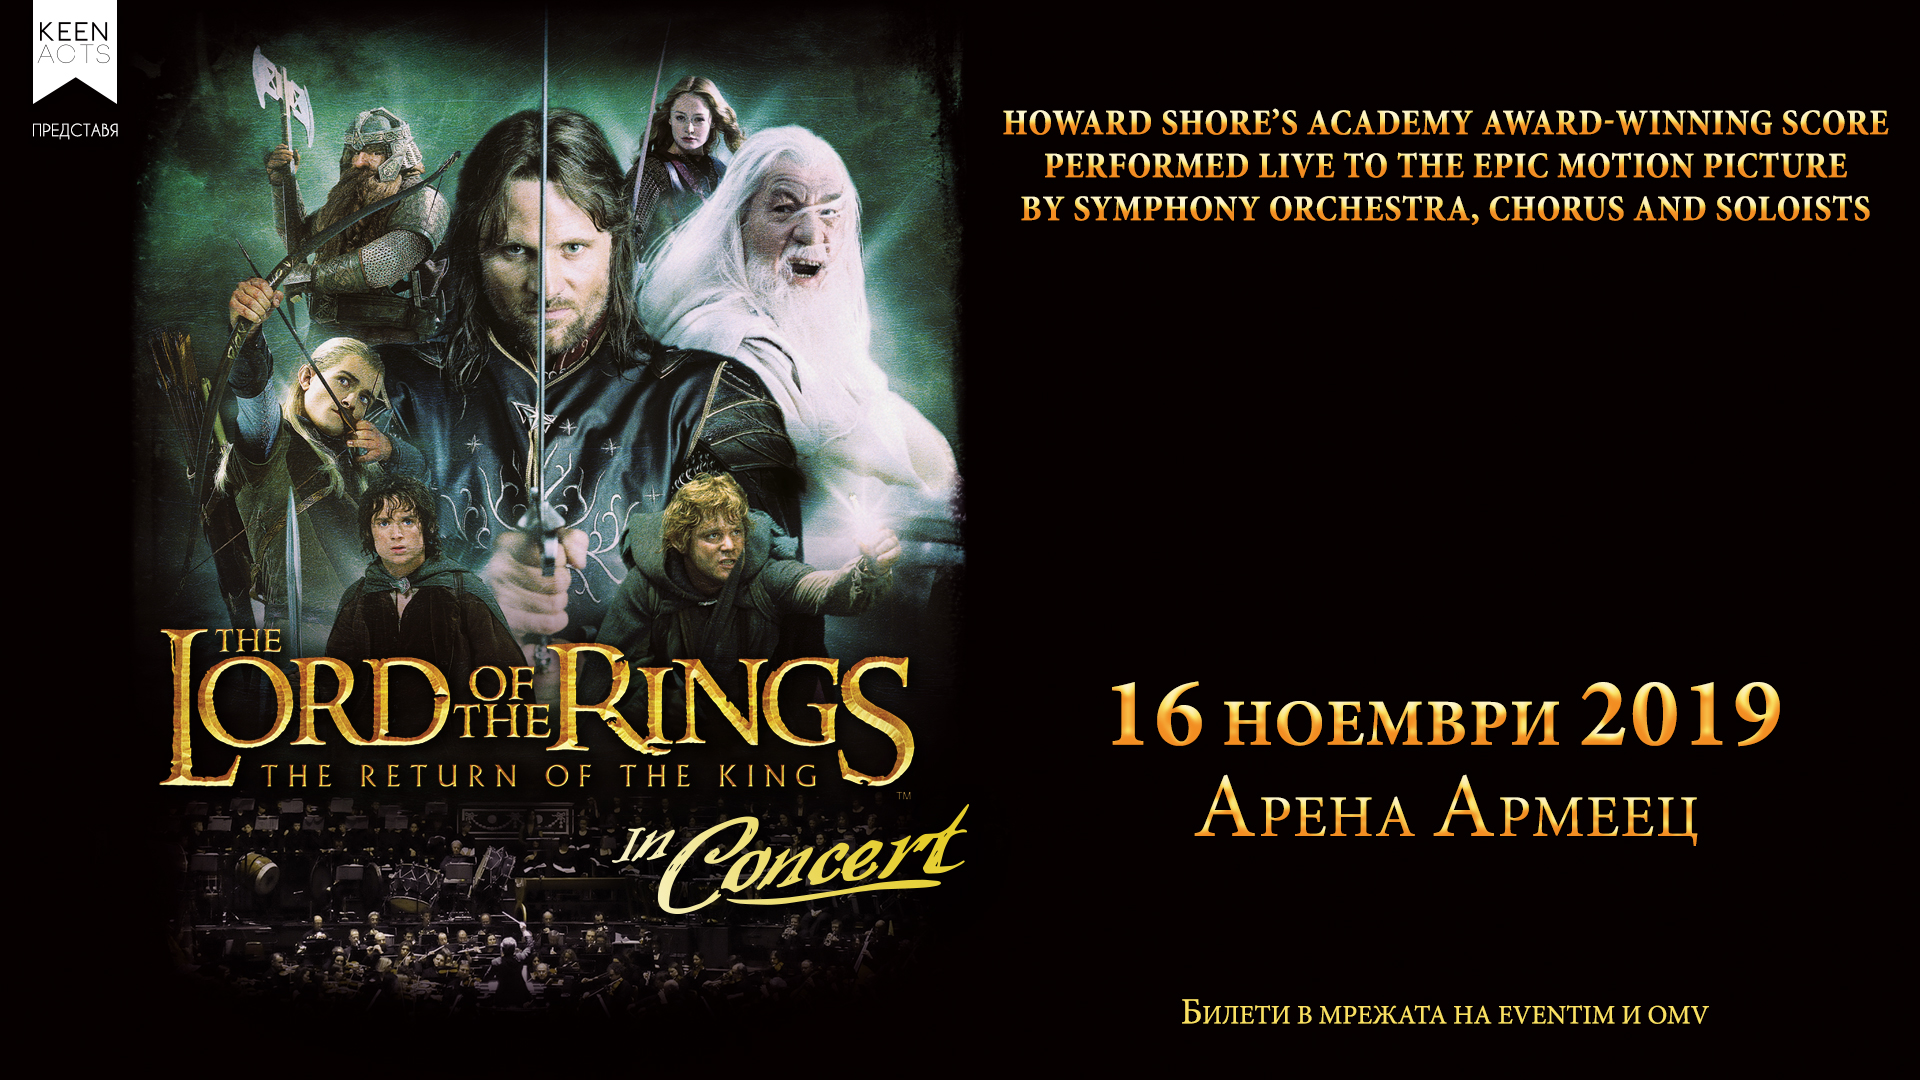 LORD OF THE RINGS: THE RETURN OF THE KING IN CONCERT